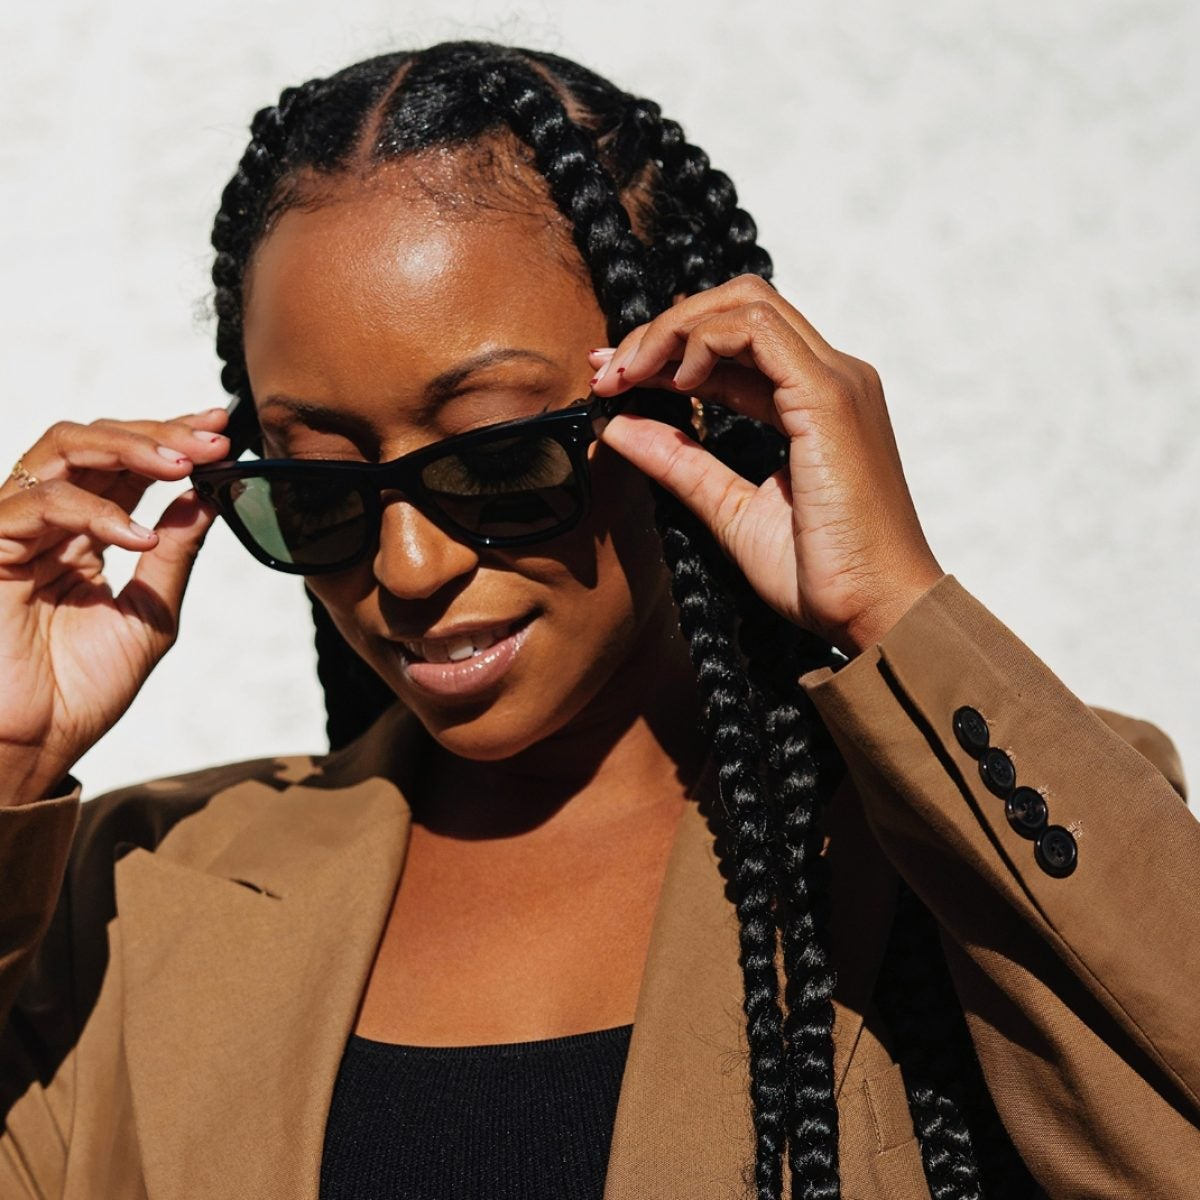 Stylist Shiona Turini On The Style 'Evolution' In 'Insecure' Season 5, Why She's Obsessed With Ray-Ban Stories Sunglasses